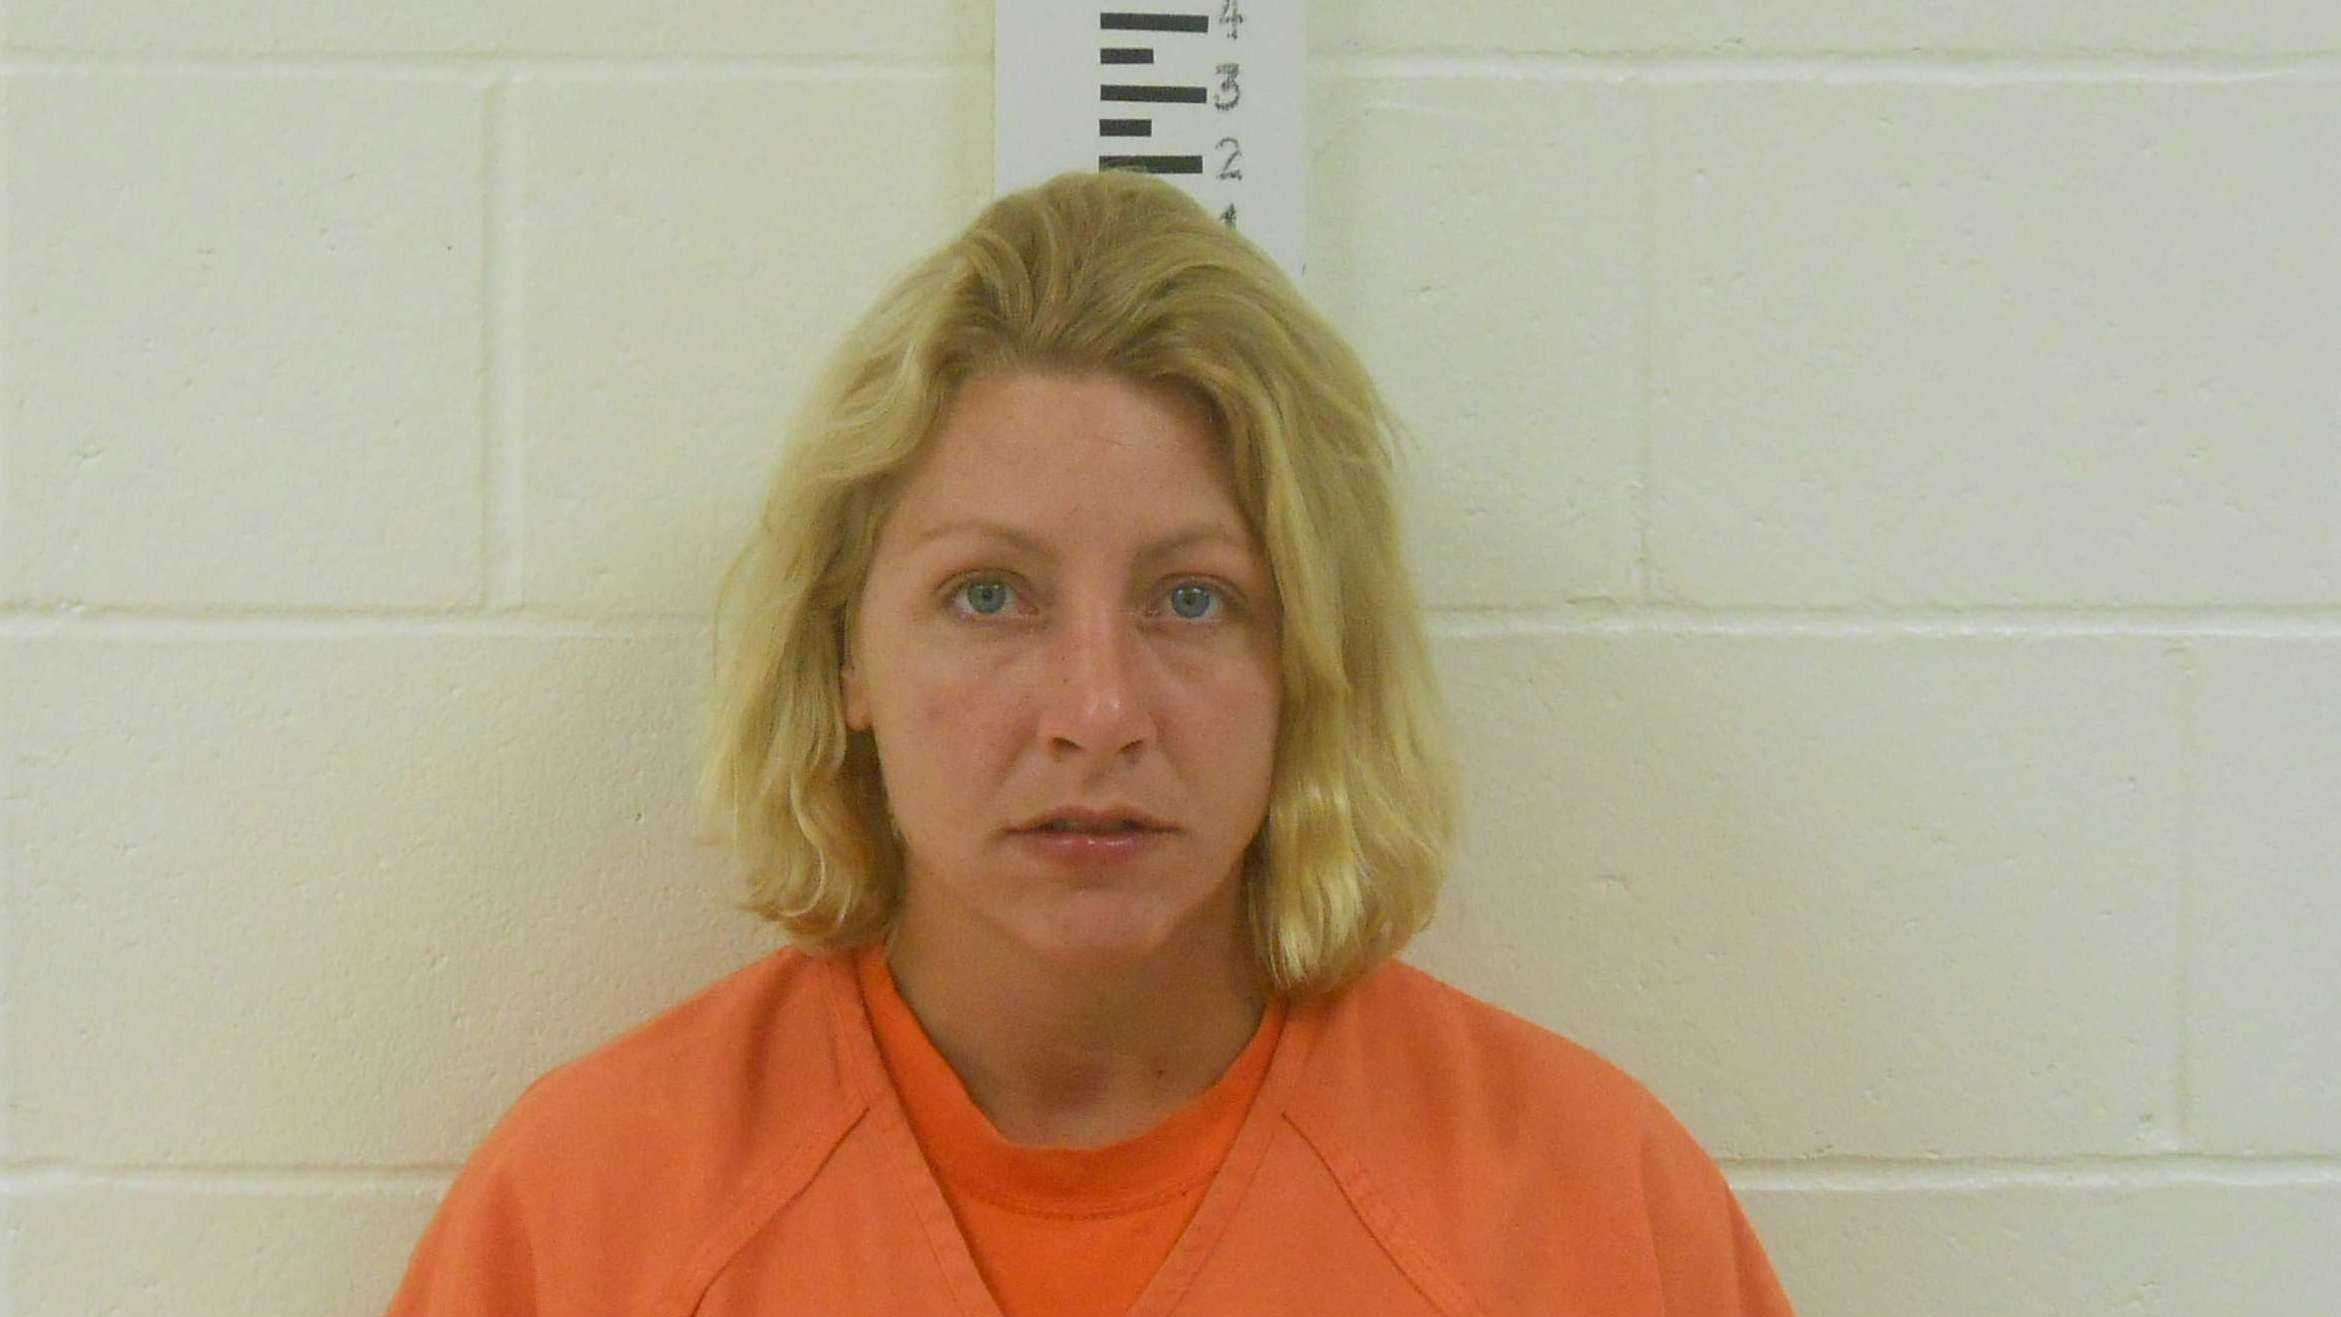 Christina Larrivee is charged with burglary